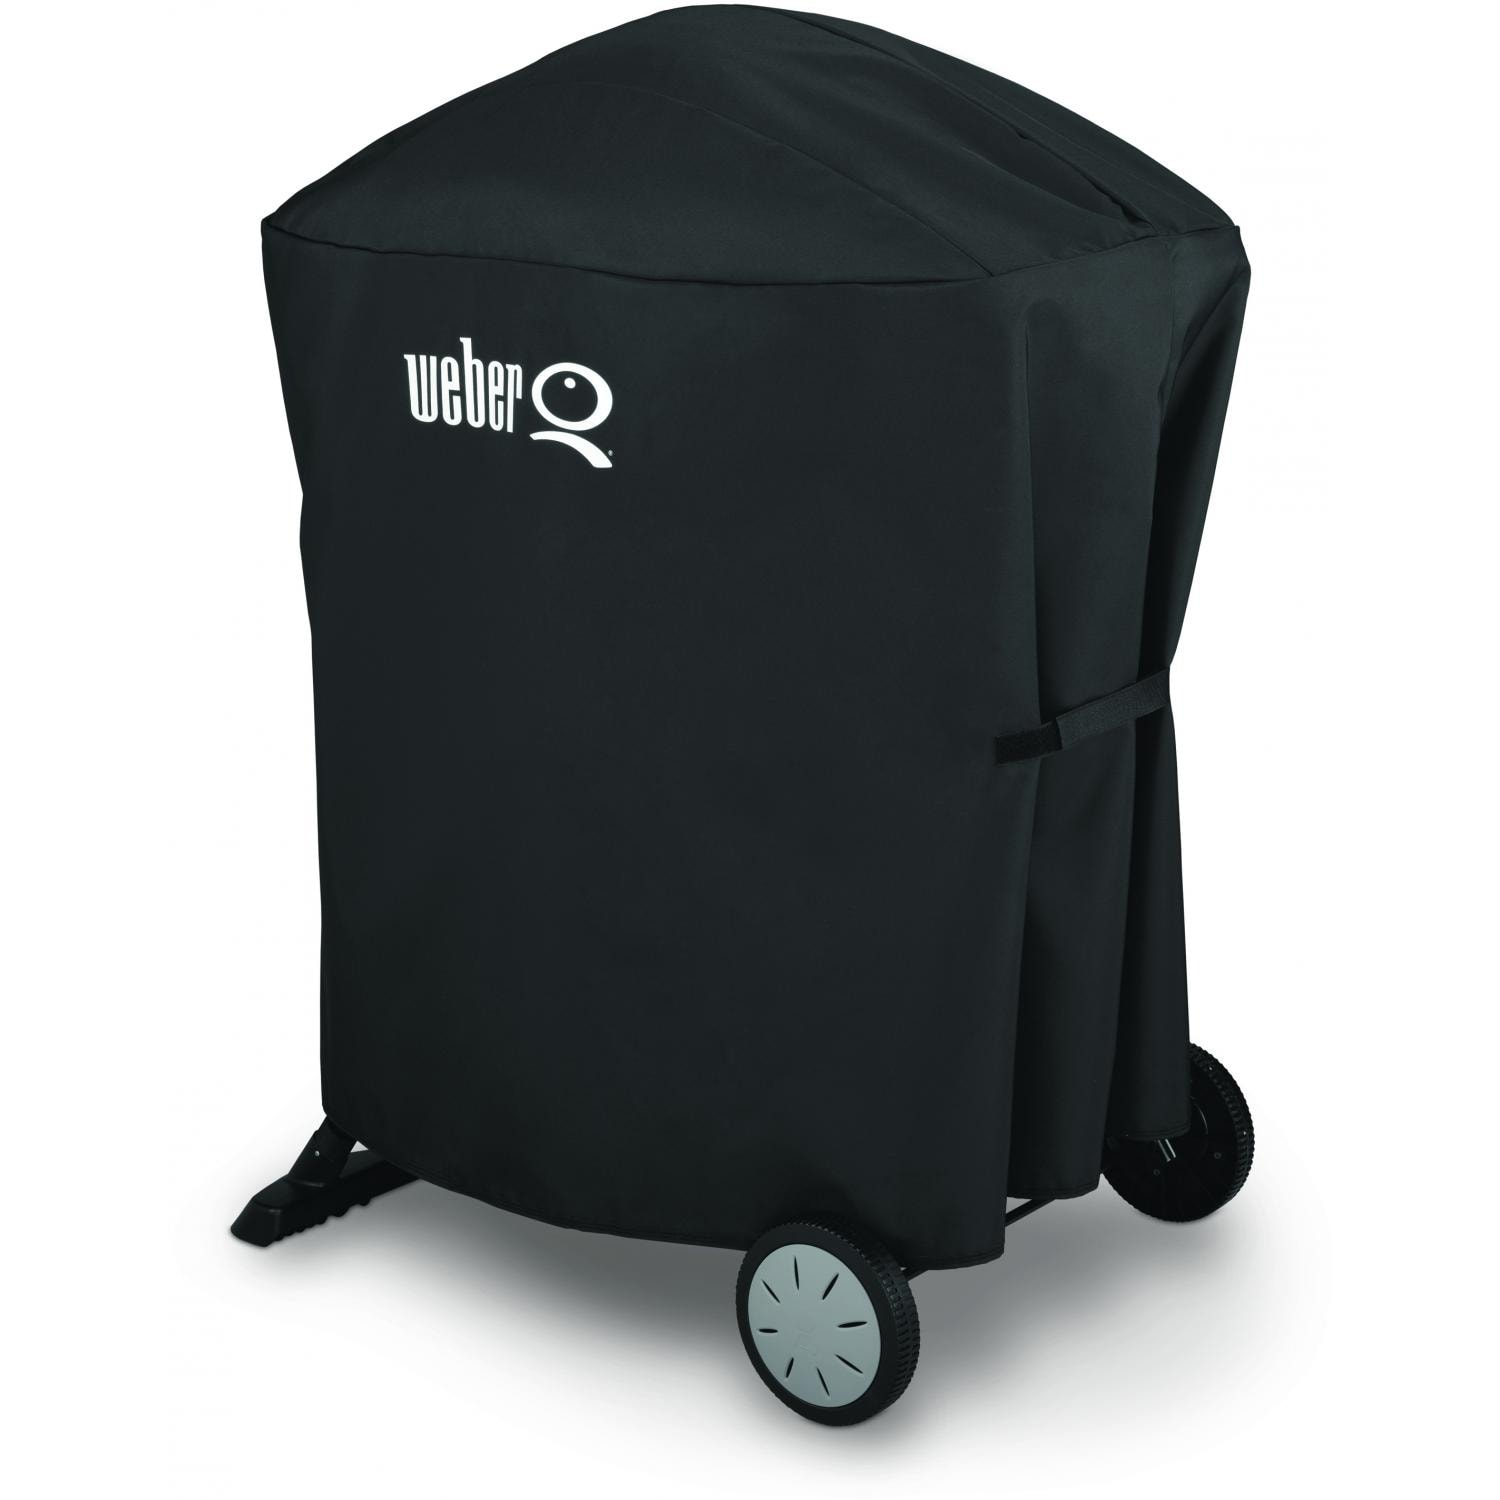 weber 7113 premium grill cover with storage bag for q 100. Black Bedroom Furniture Sets. Home Design Ideas